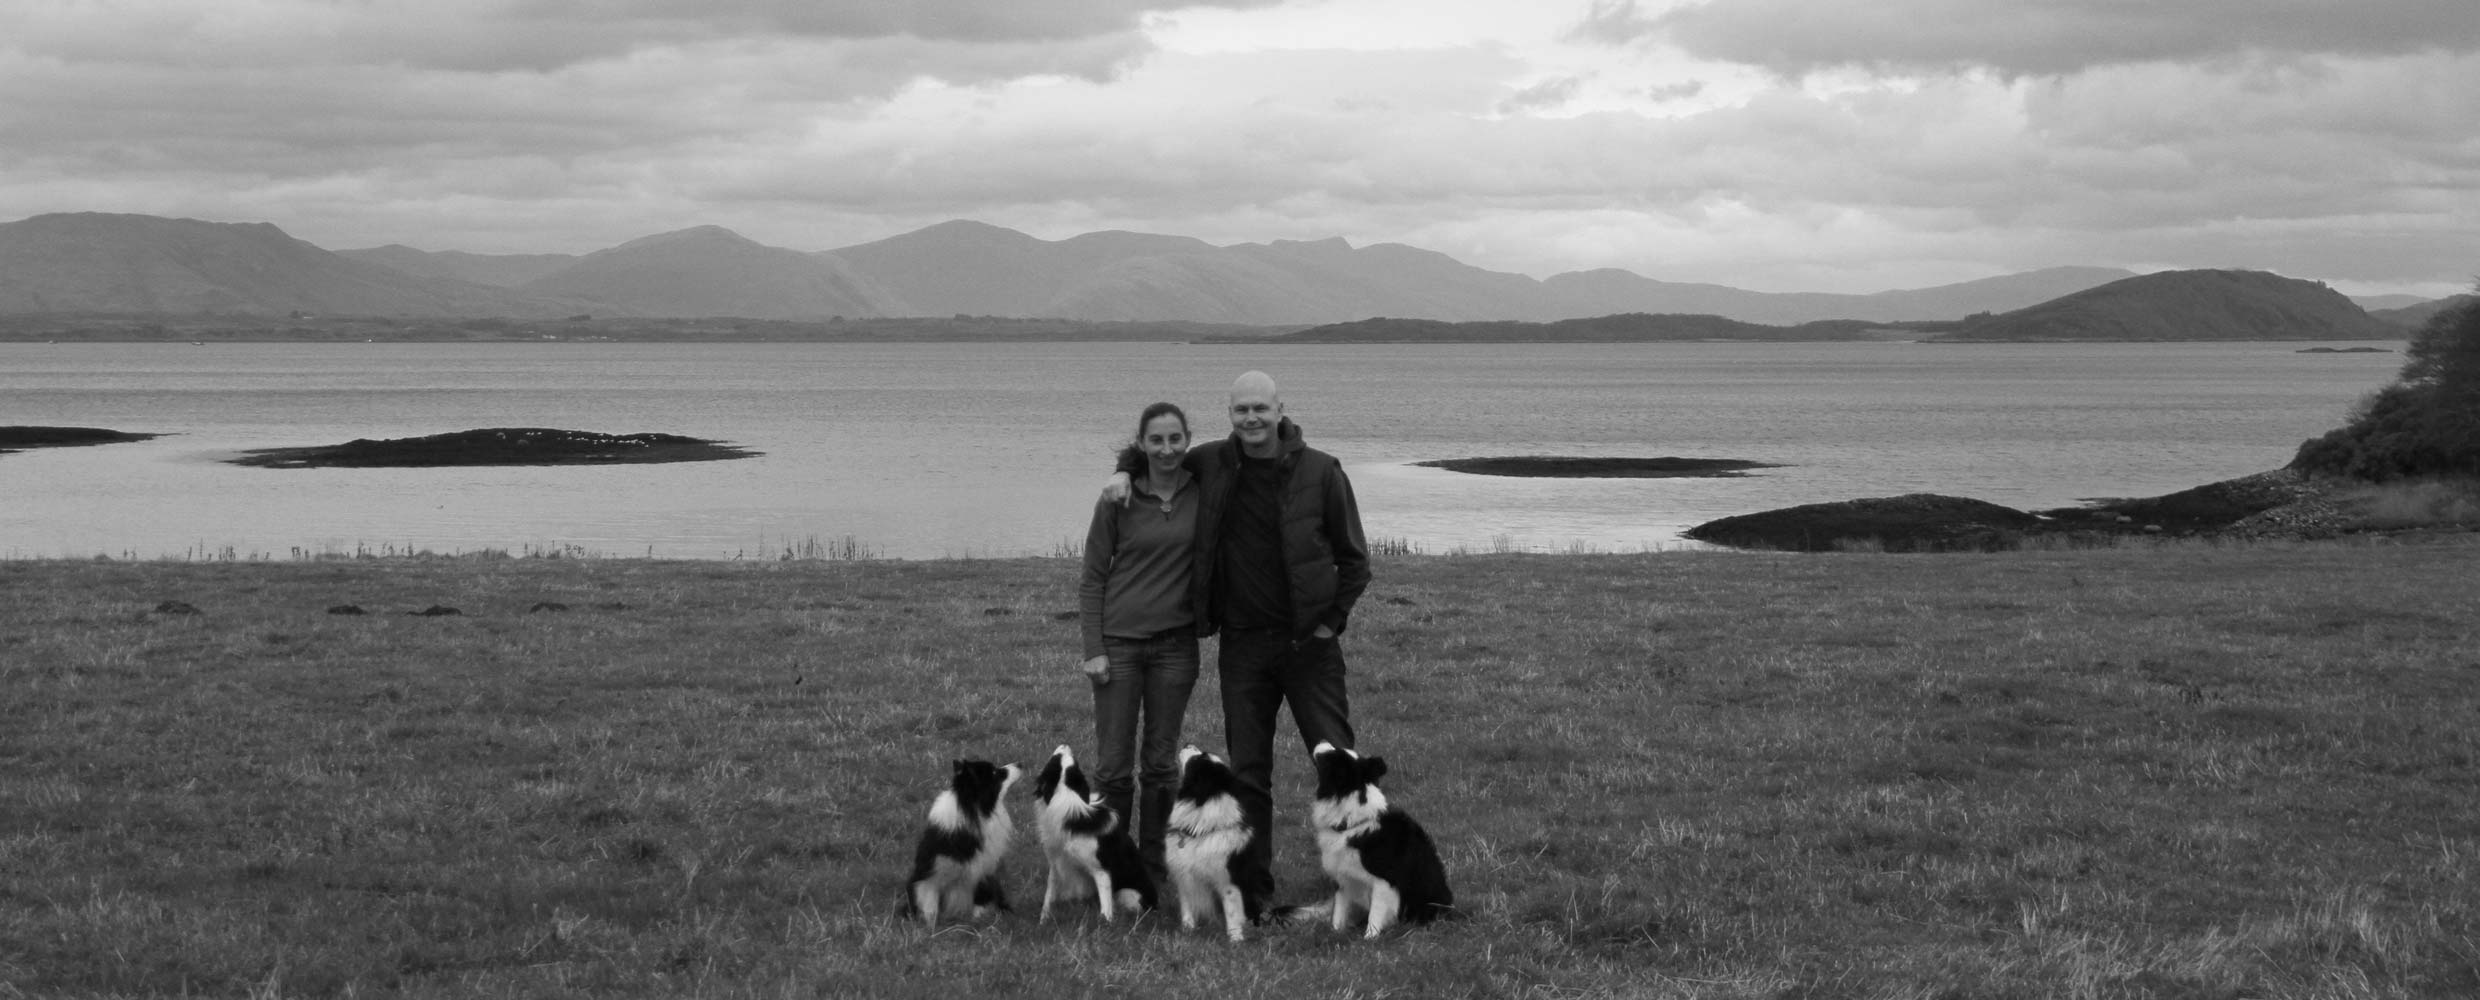 Alison Roets and Rob Evans with their Border Collies, Oban beach, Scotland